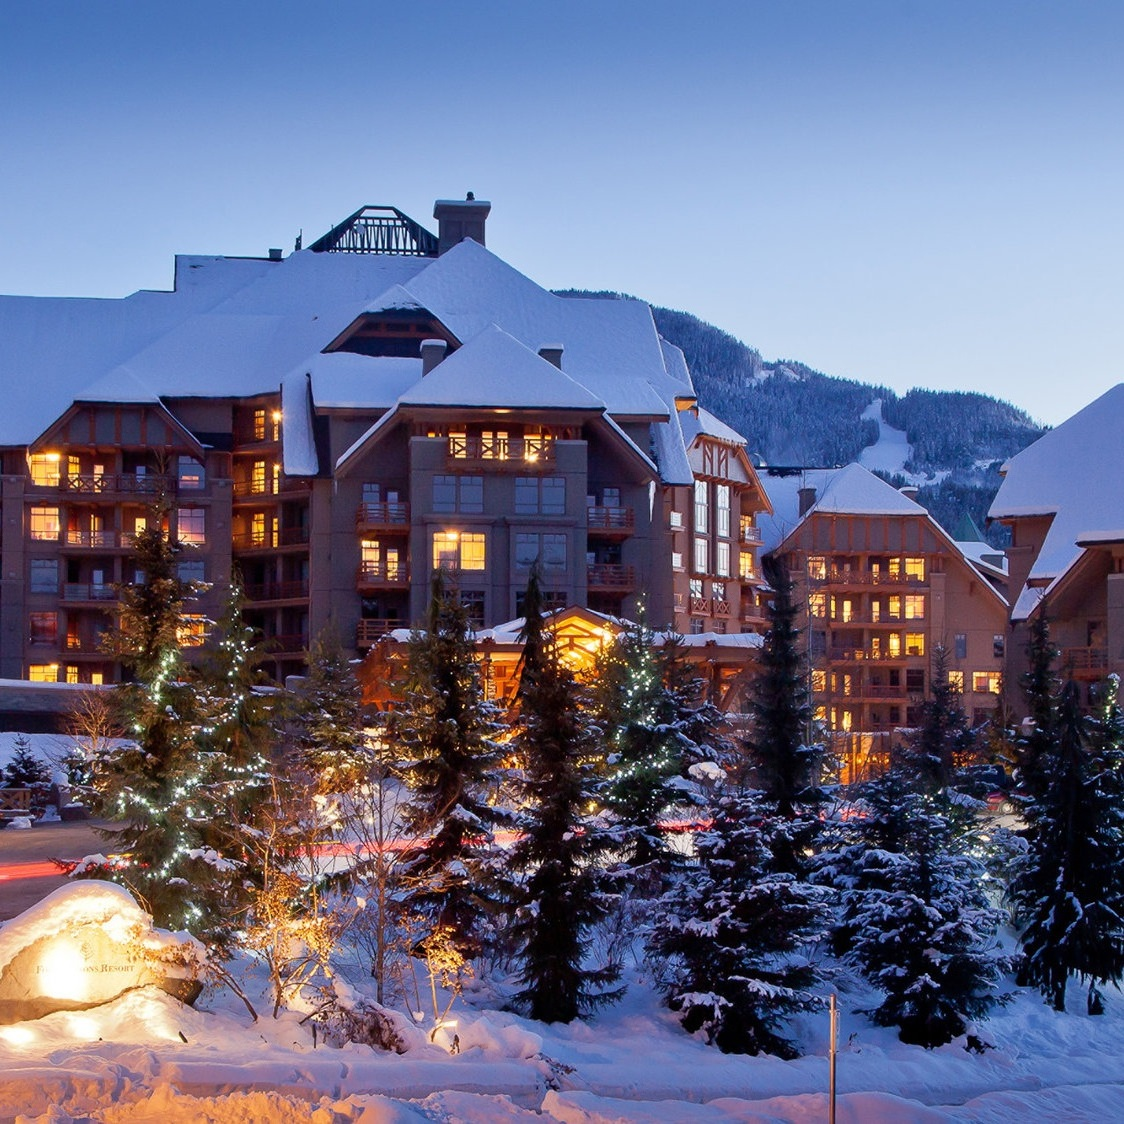 Luxury Hotels - Extraordinary Escapes Whistler has selected the most superb five-star luxury hotels you'll find anywhere in the world. Each of these hotels is unique, providing a different holiday experience. Our consultants know every detail there is to know about Whistler and our hotels. We can tell you which hotel is best for families, what each room is like in every hotel, which rooms are inter-connecting, which rooms offer laundry facilities and what hotels offer the best value for money. Extraordinary Escapes offers personalised service based on our own first hand experience.